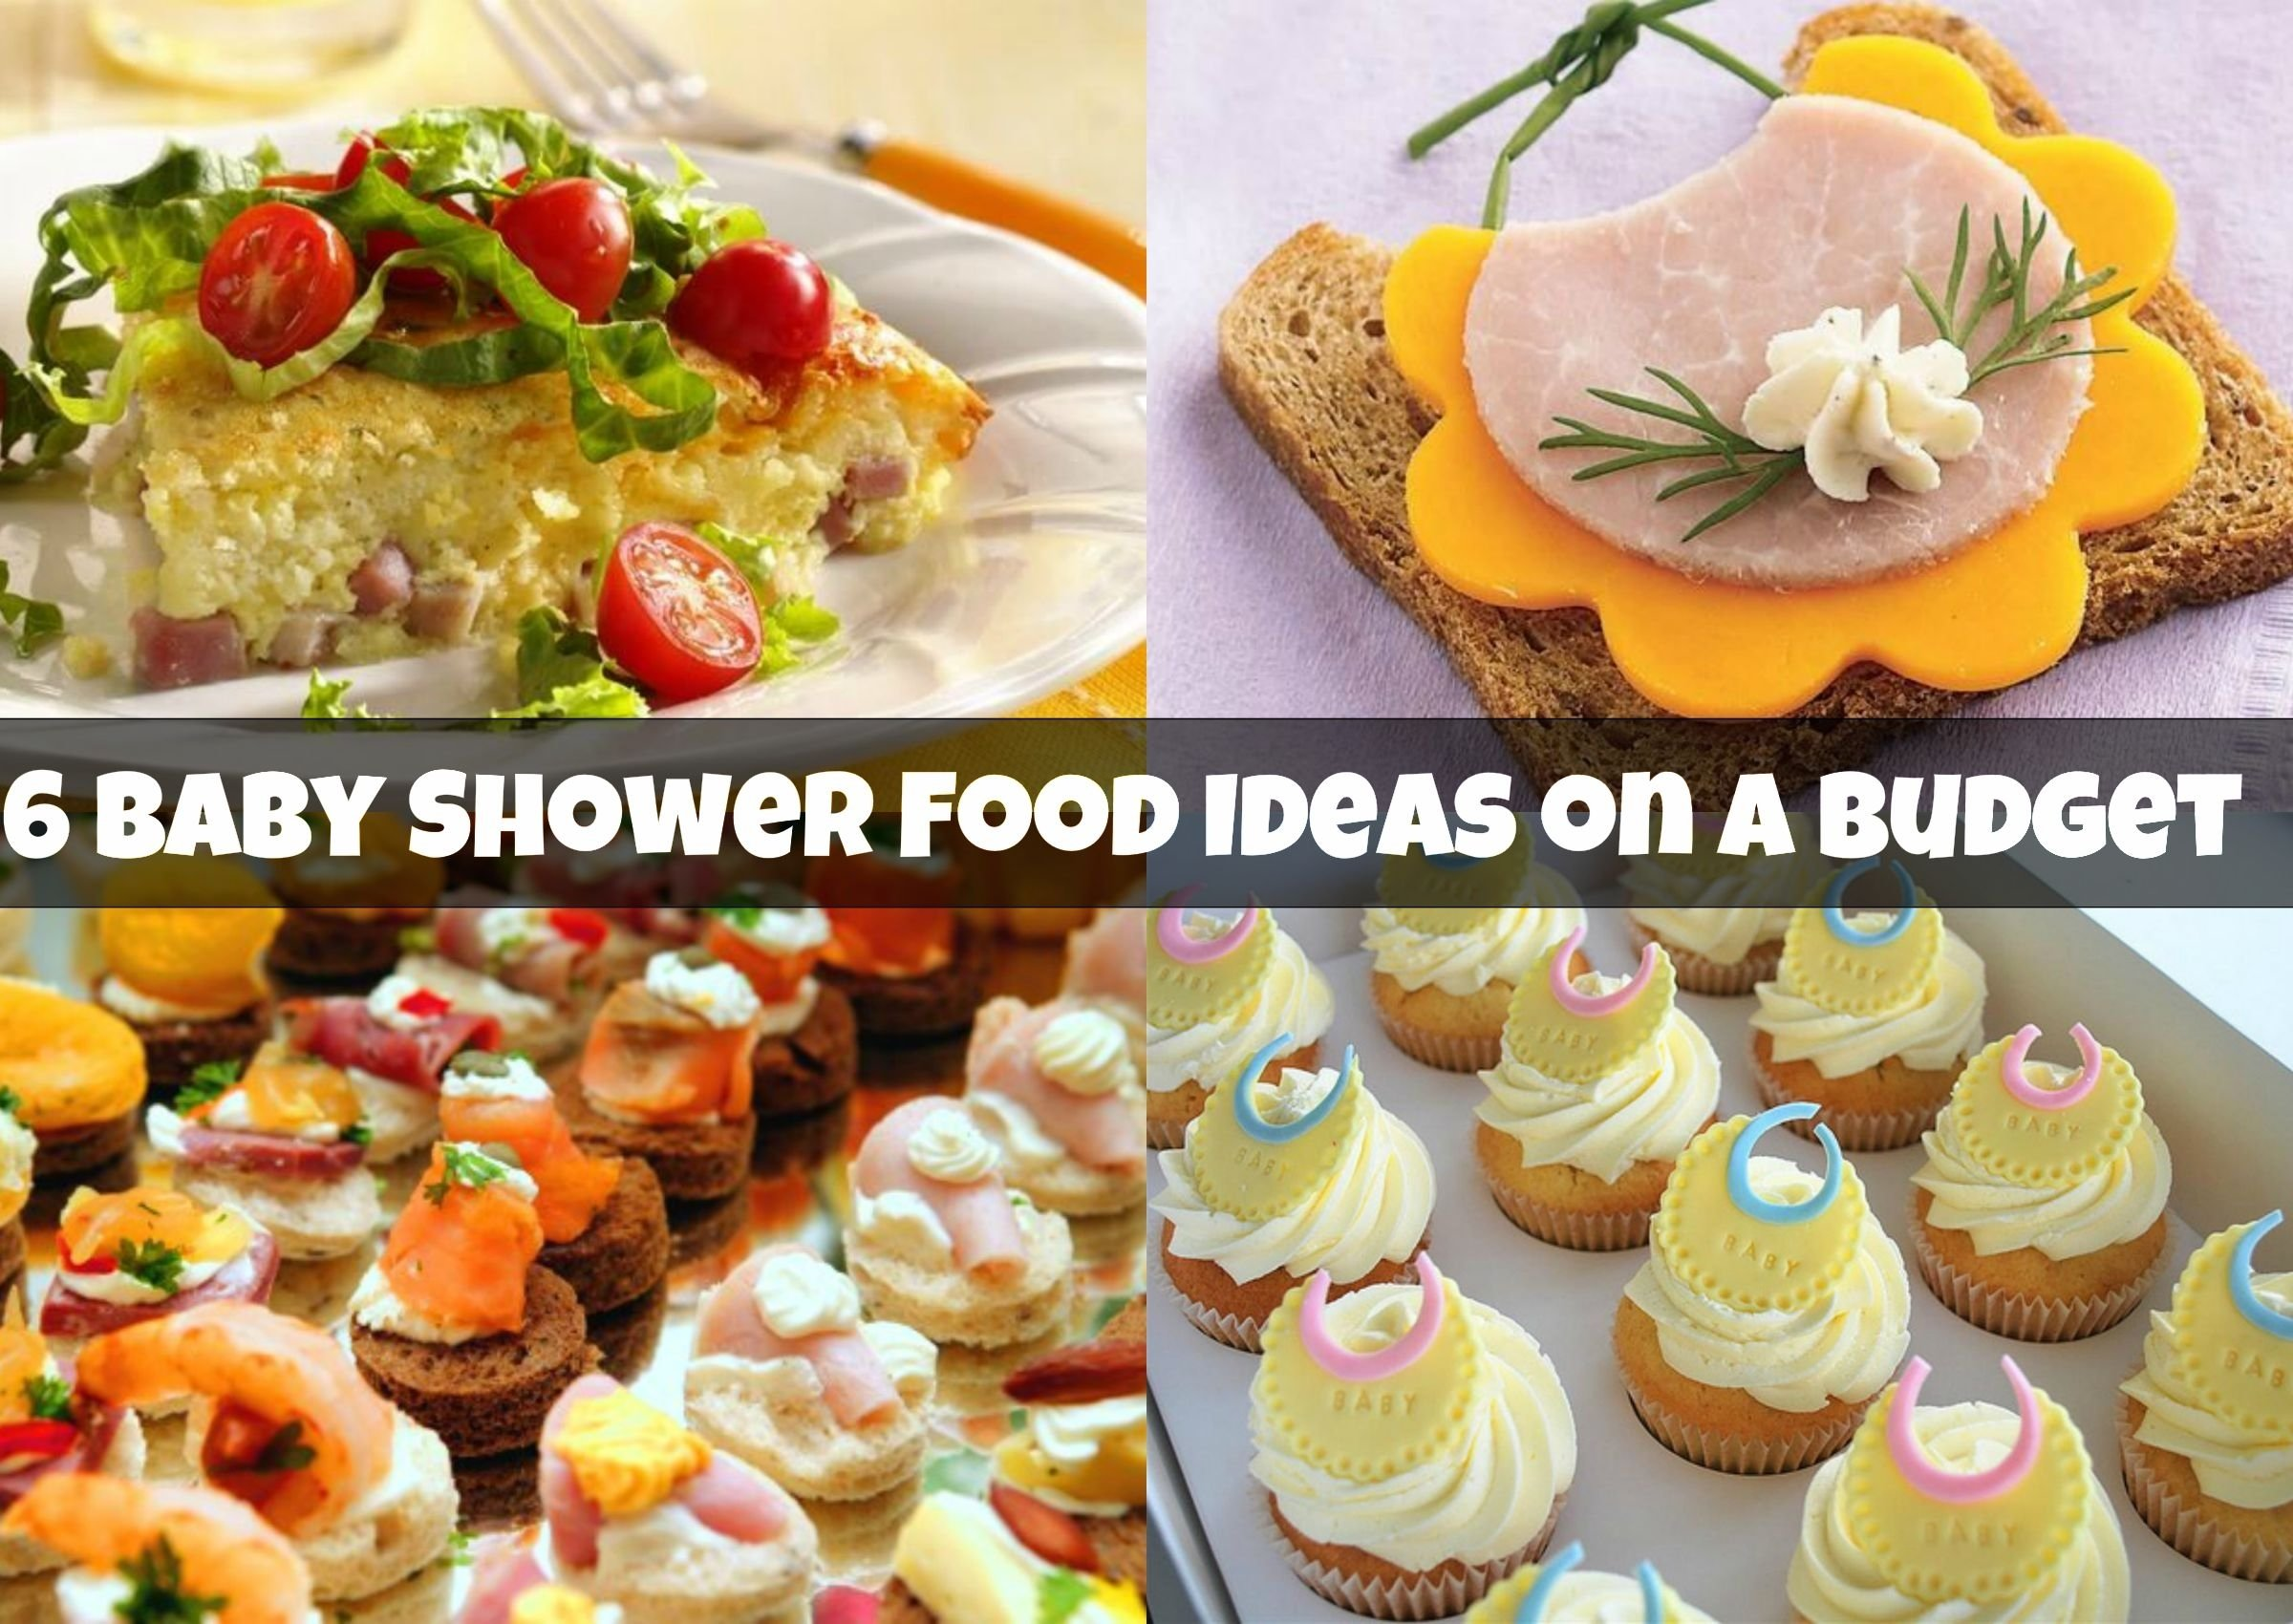 10 Unique Baby Shower Food Ideas For A Girl baby shower appetizer ideas nice food on budget dazzling design 1 2020